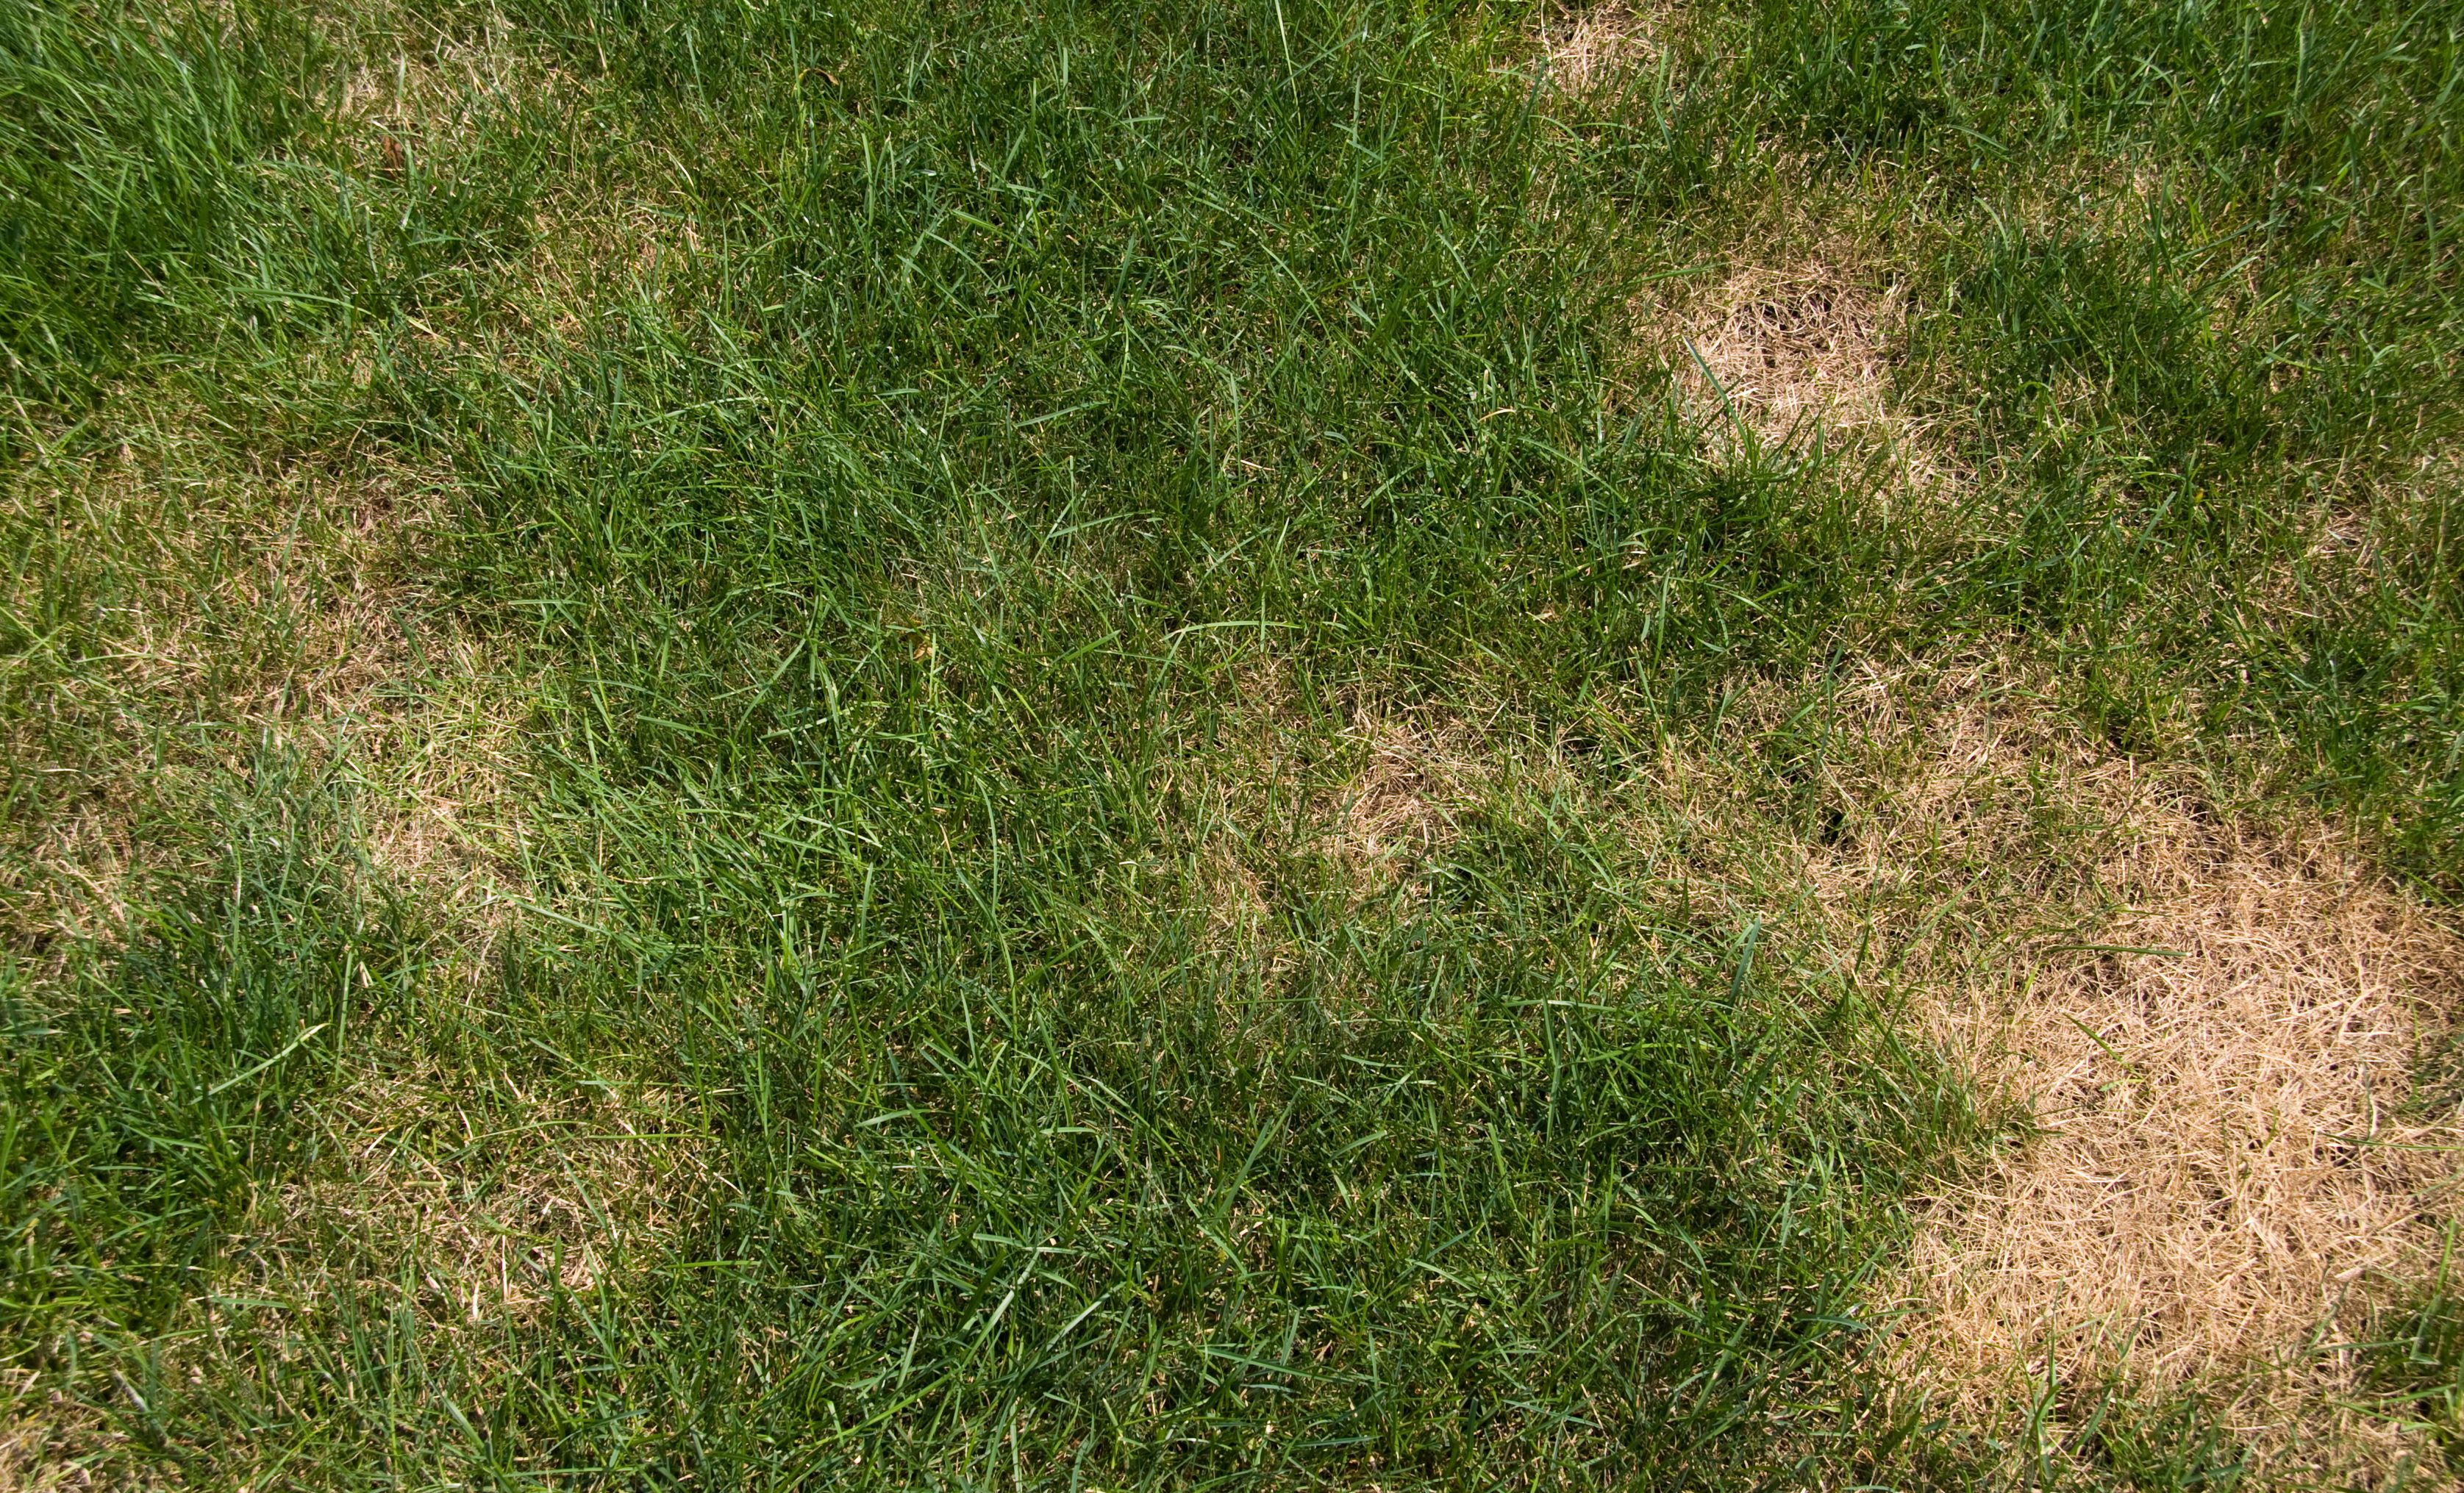 How To Identify 5 Common Lawn Diseases